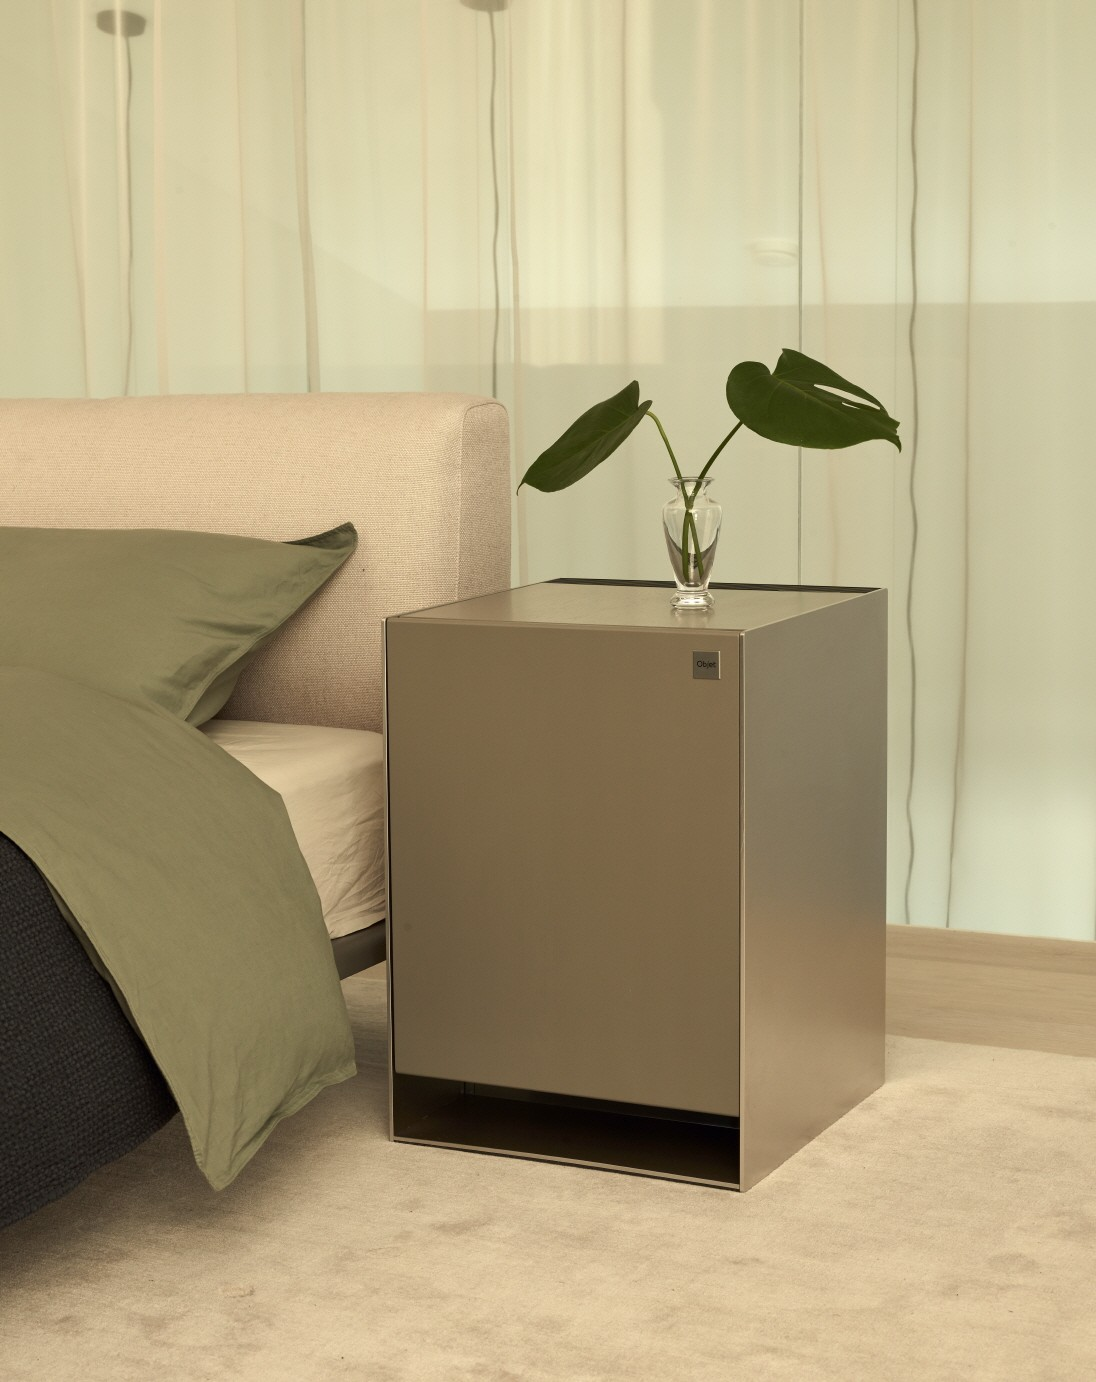 LG OBJET Air Purifier with a plant placed on top of it positioned next to a bed